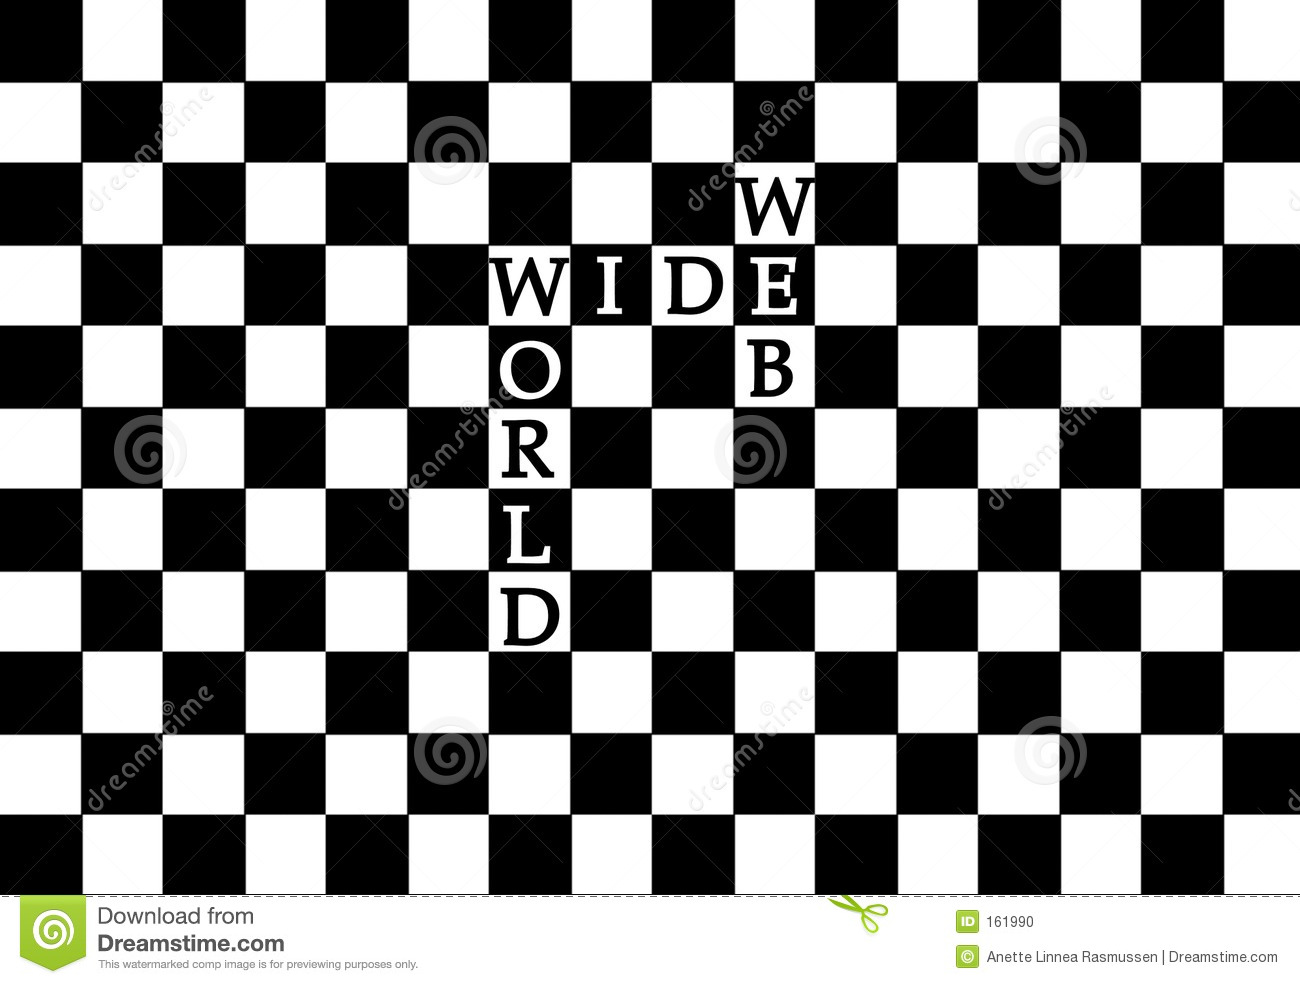 World Wide Web in a chess pattern